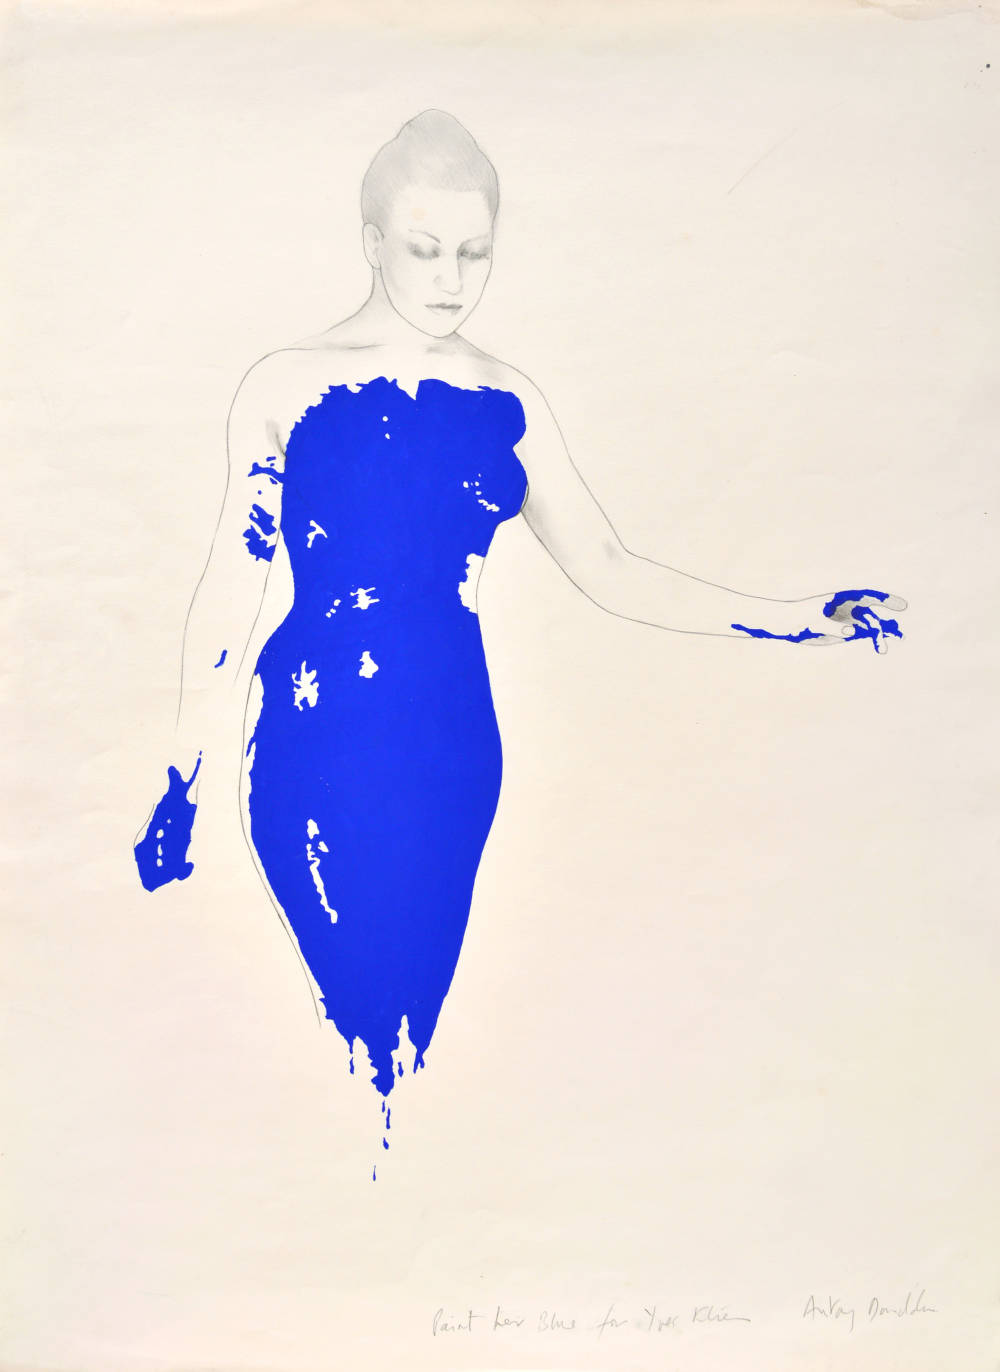 Paint her blue for Yves Klein